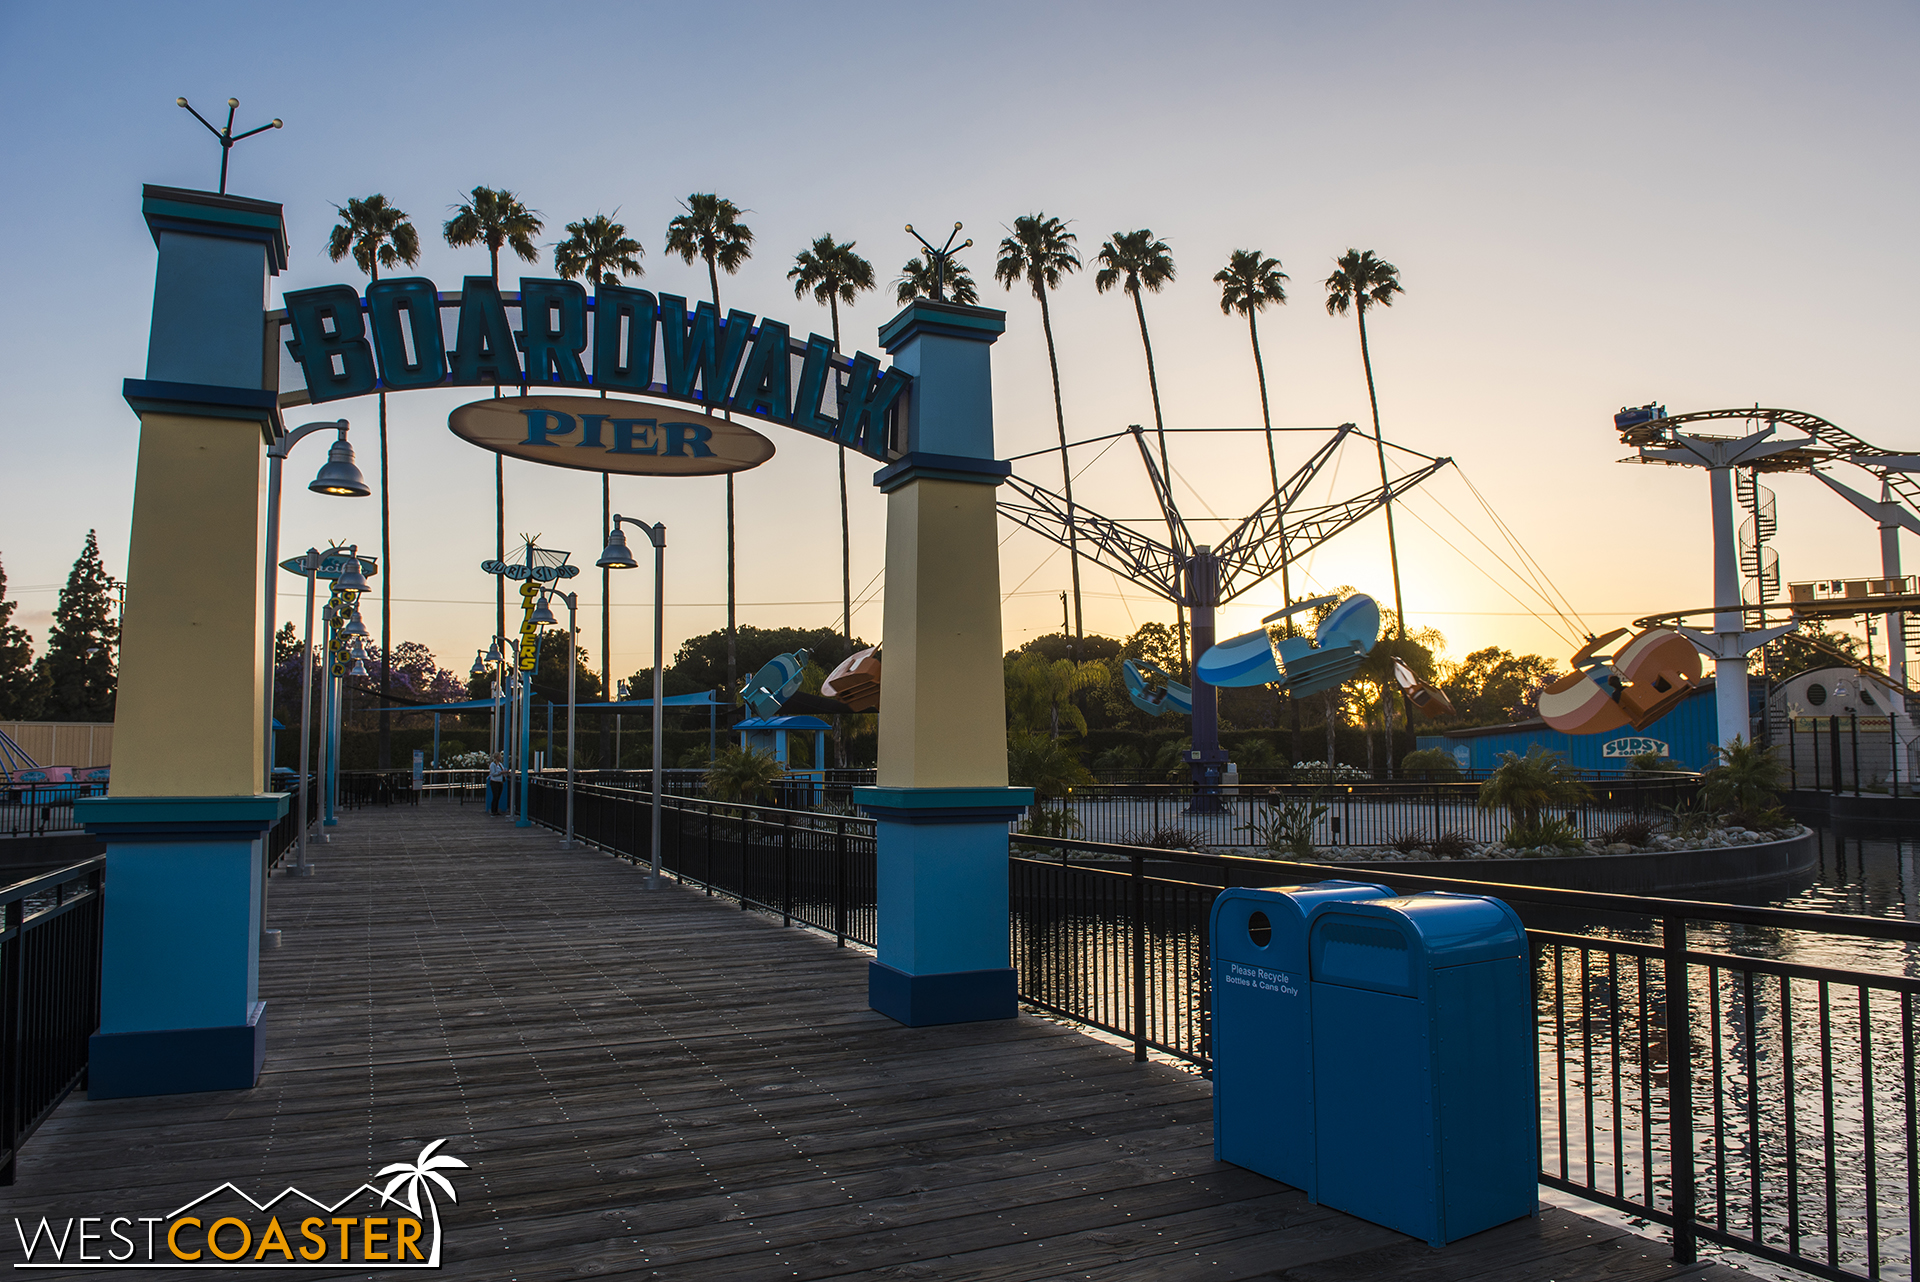 Our Thursday media night gave us some fun ERT on all the Boardwalk attractions.